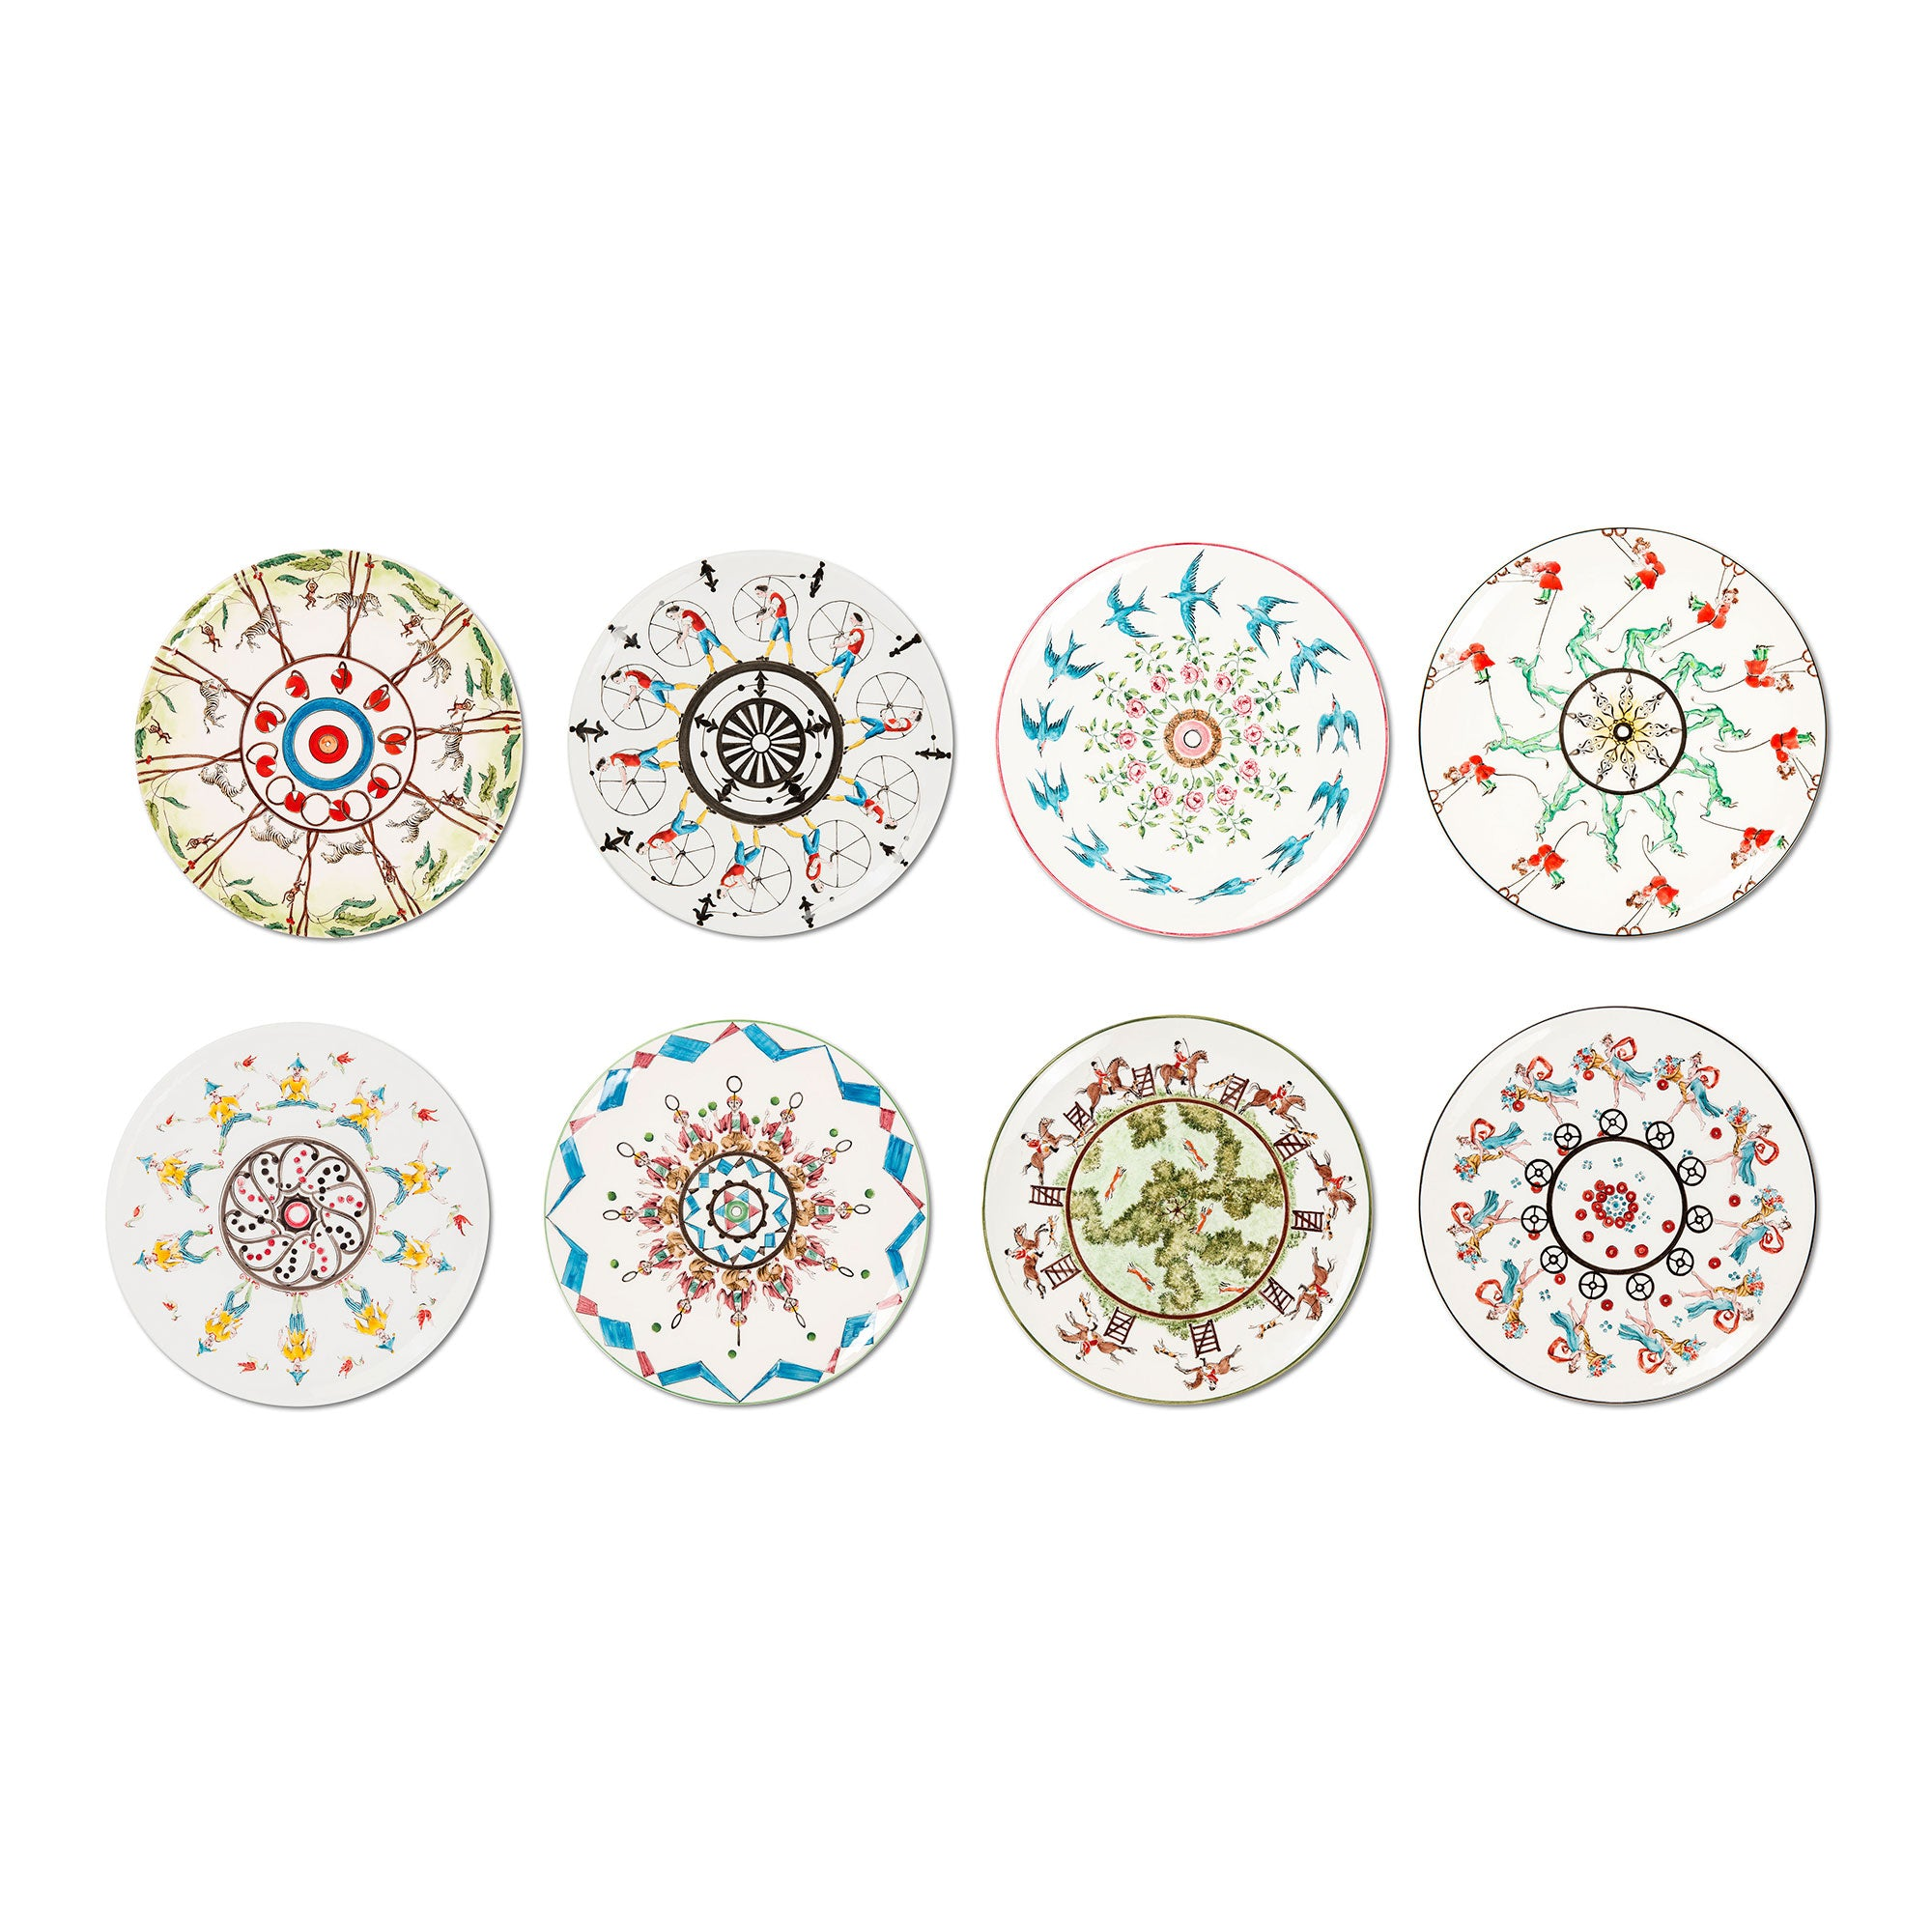 Playplates Cornucopia Dinner Plate (25cm)